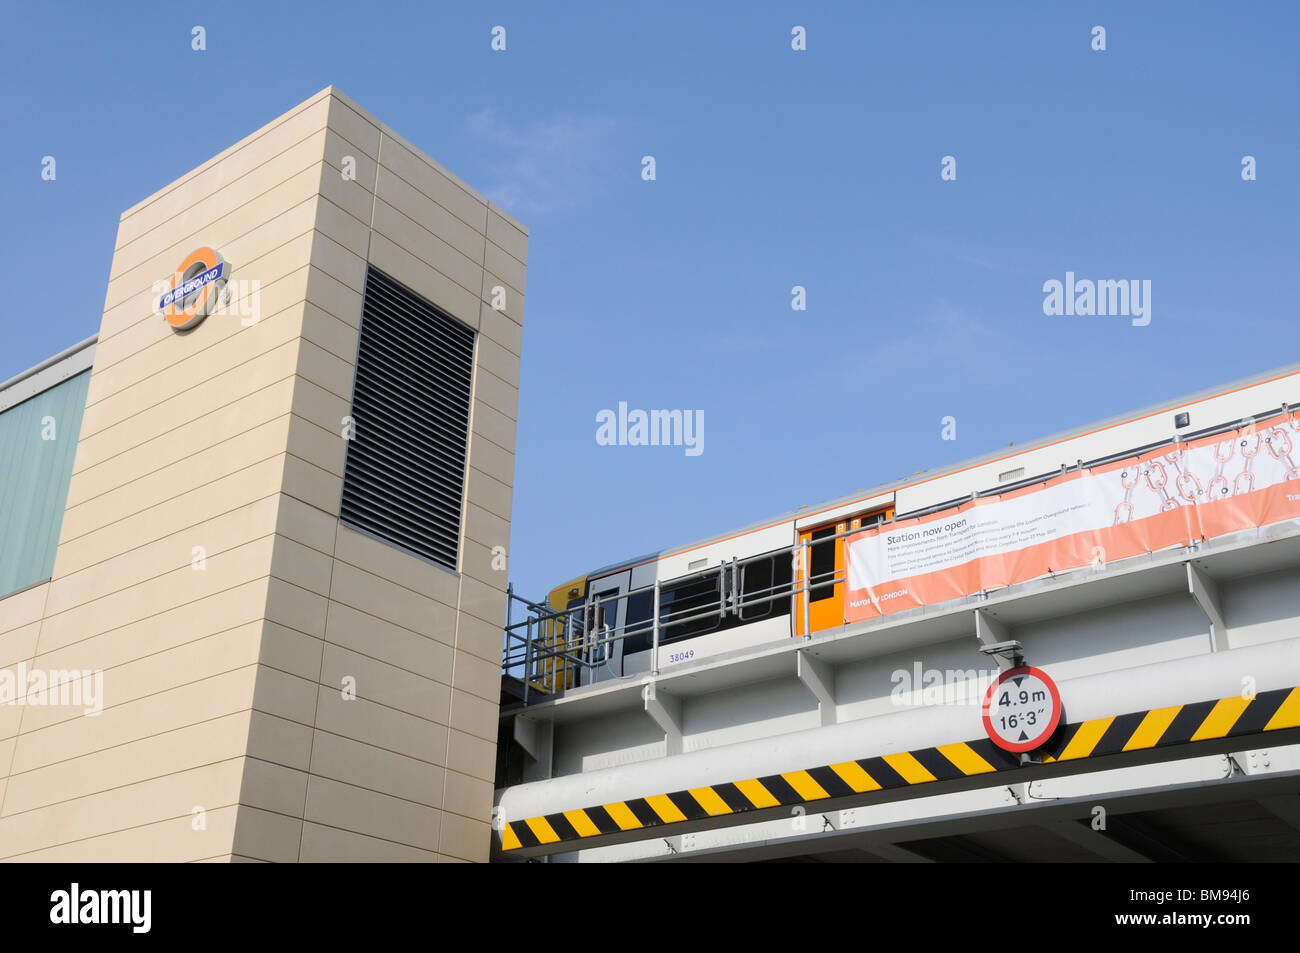 UK NEW LONDON OVERGROUND LINE TO NEW CROSS READY FOR 2012 OLYMPICS - Stock Image